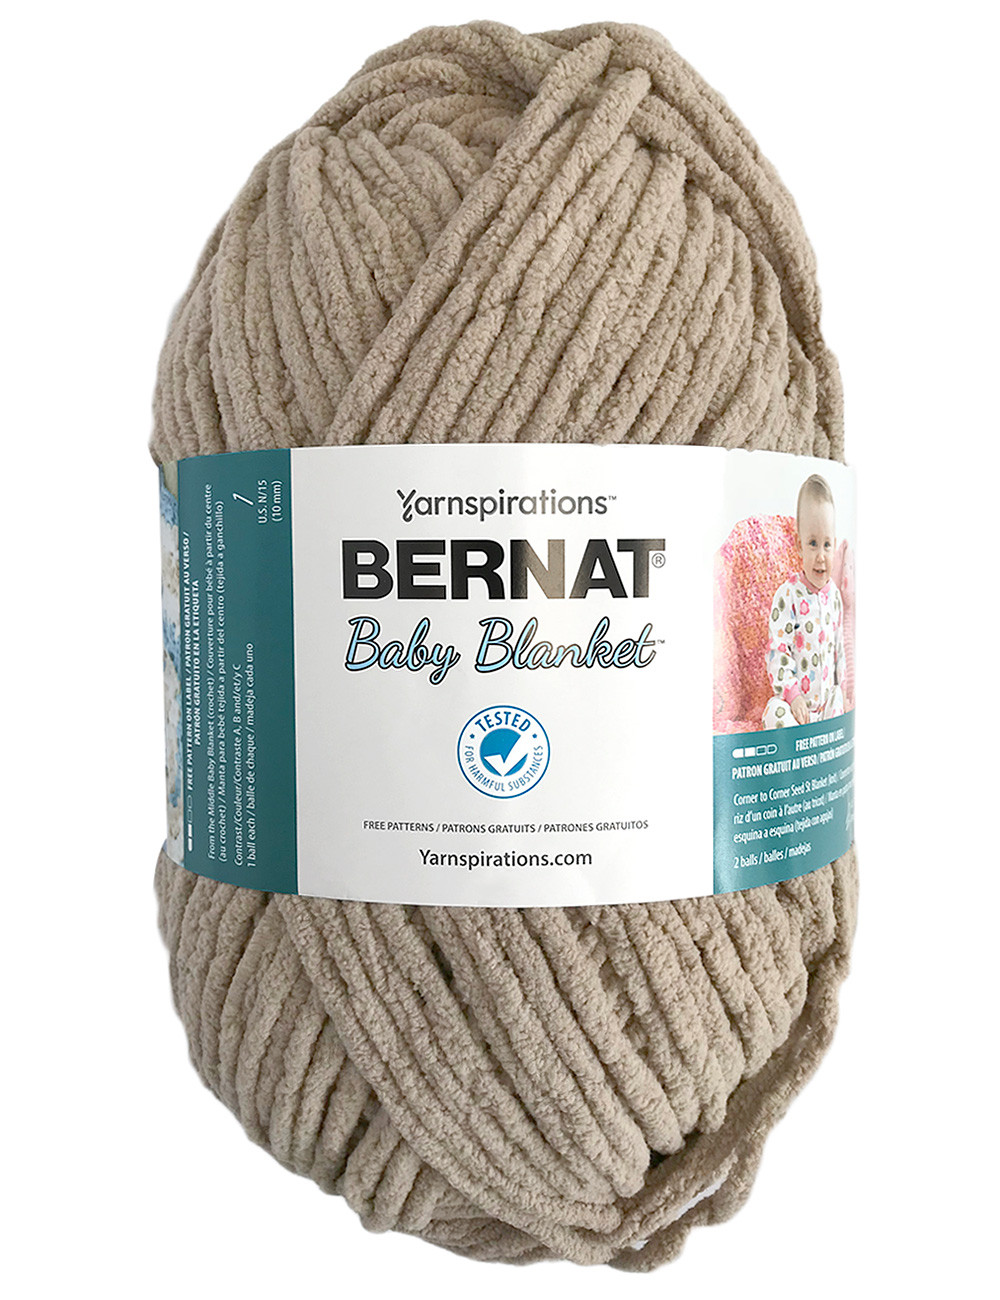 Bernat Baby Blanket Yarn Big Ball Lovely Baby Sand Bernat Baby Blanket Big Ball Chenille Yarn 300g Of Awesome 48 Pictures Bernat Baby Blanket Yarn Big Ball